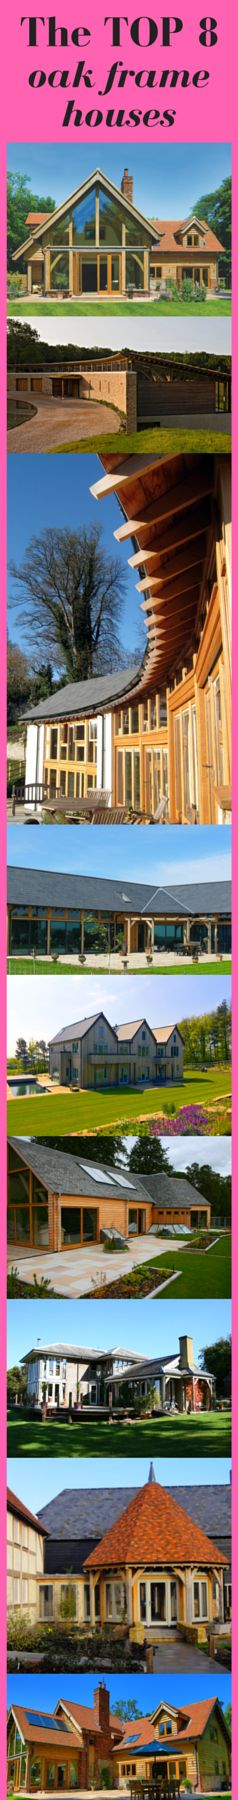 The top 8 oak framed houses - demonstrating the dramatic versatility of using an oak frame to build your dream home.